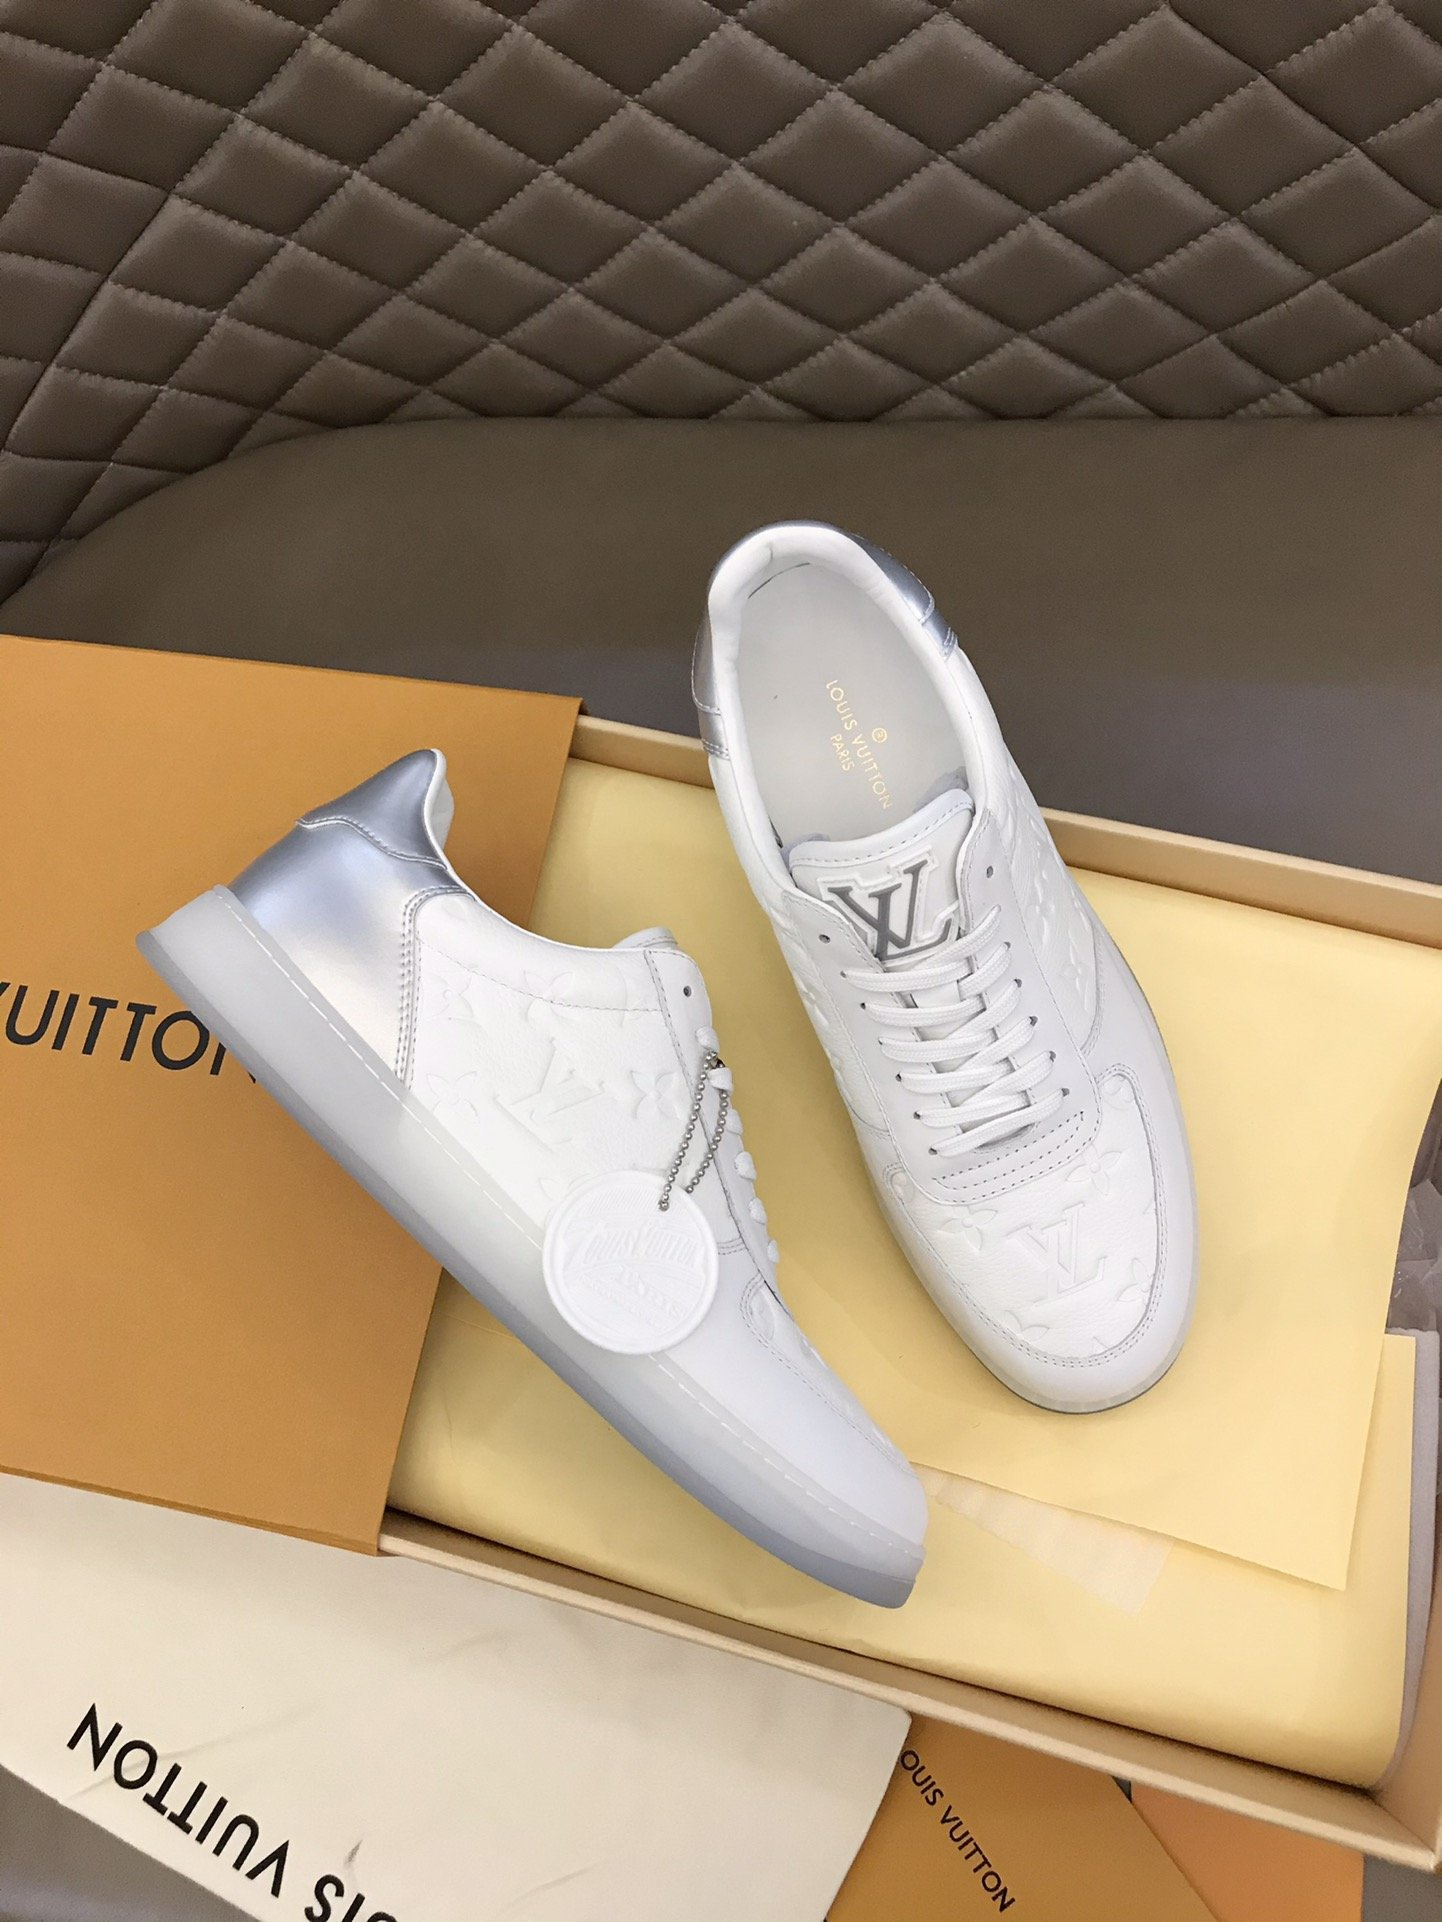 Image of LV Louis Vuitton  Men Fashion Boots fashionable Casual leather Breathable Sneakers Running Shoes0523em